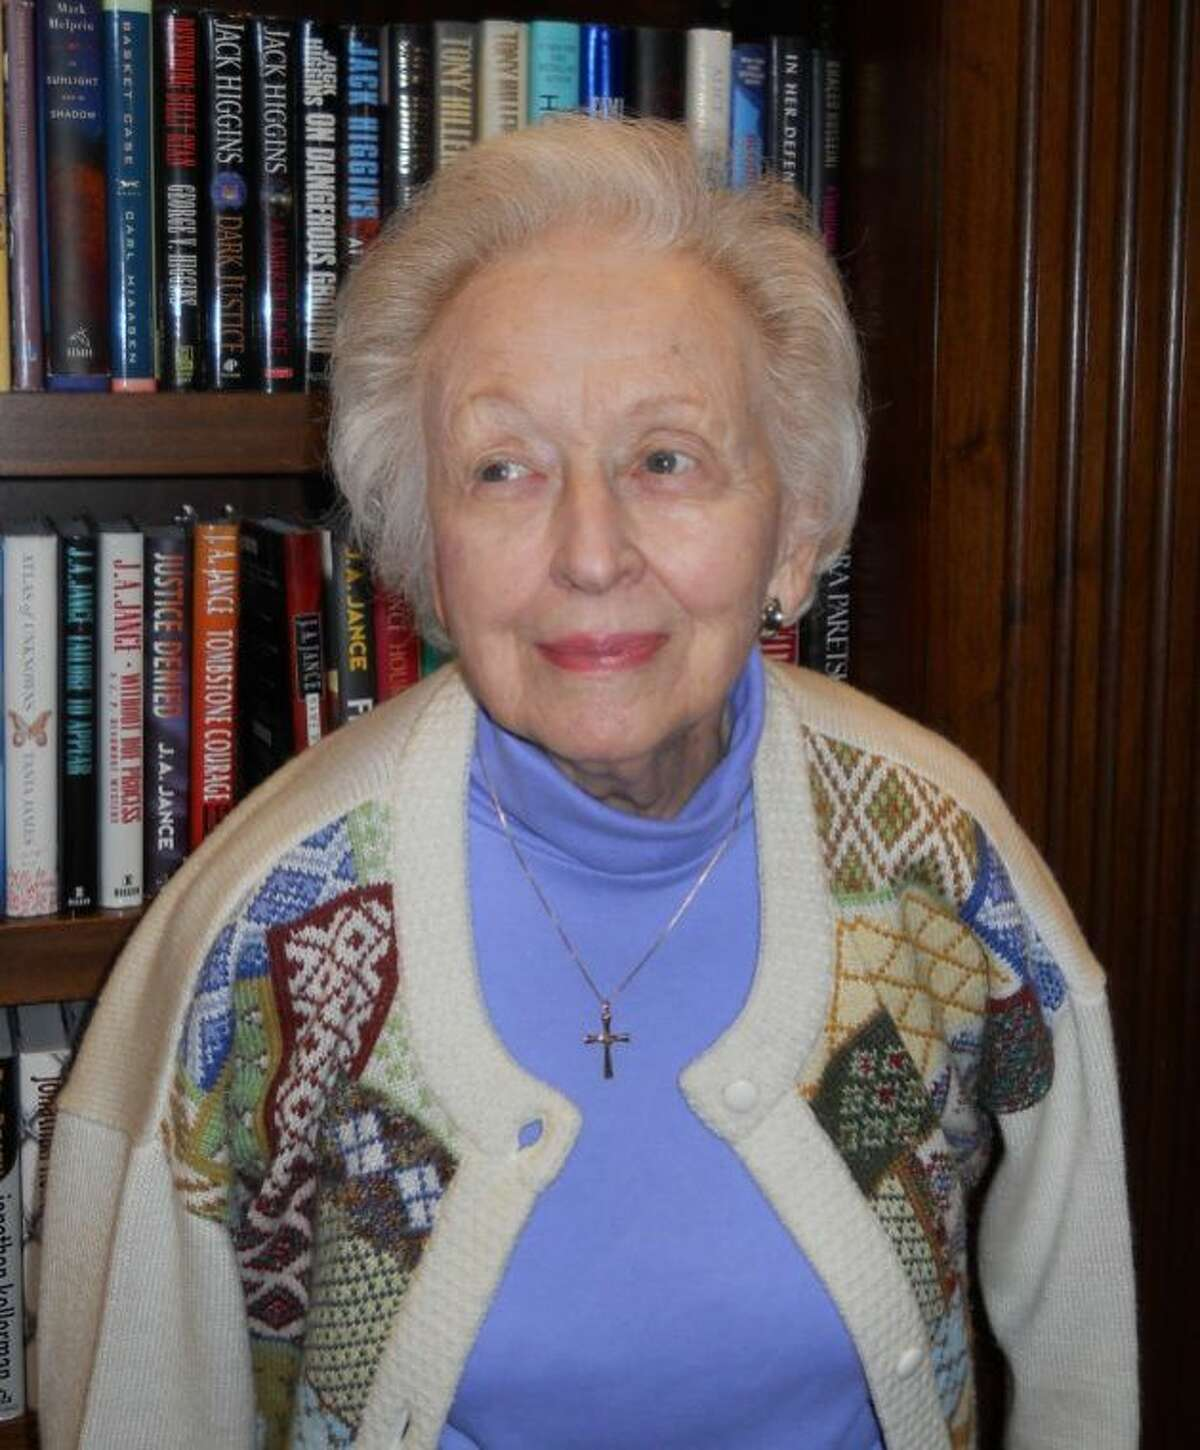 Beverly Jones, Parkway Place resident, enjoys volunteering and helping others.